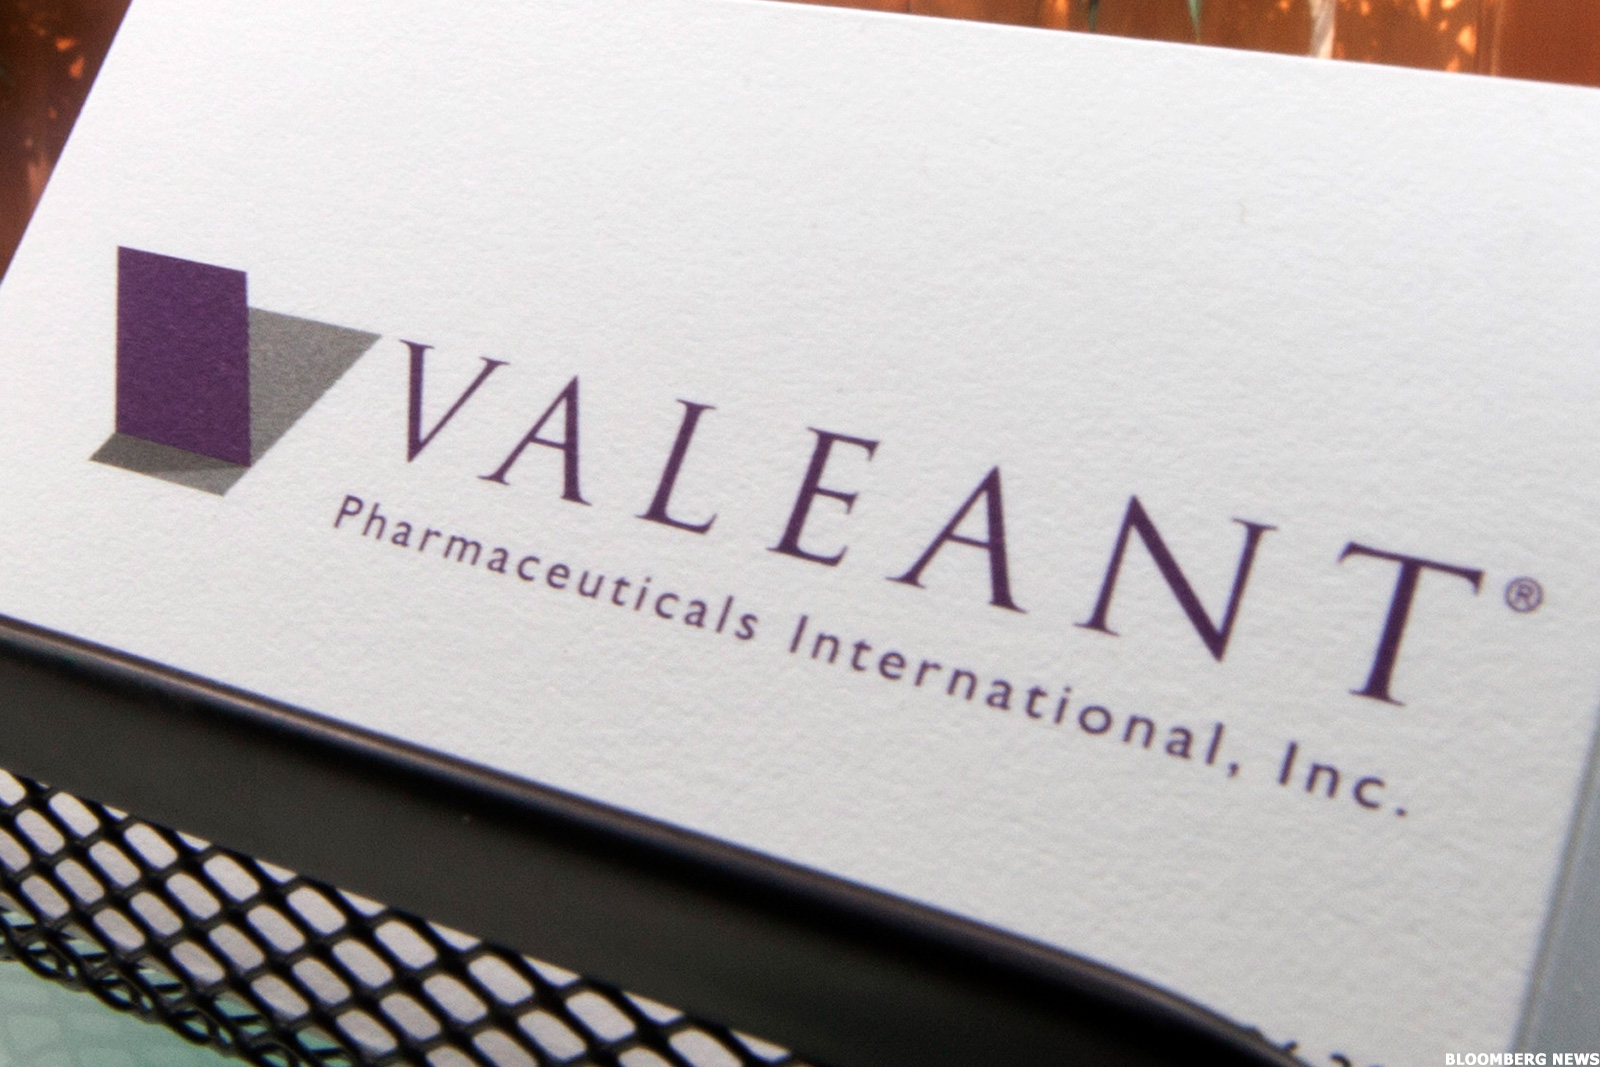 Valeant (VRX) Stock Rebounds, Restructuring Walgreens Deal - TheStreet